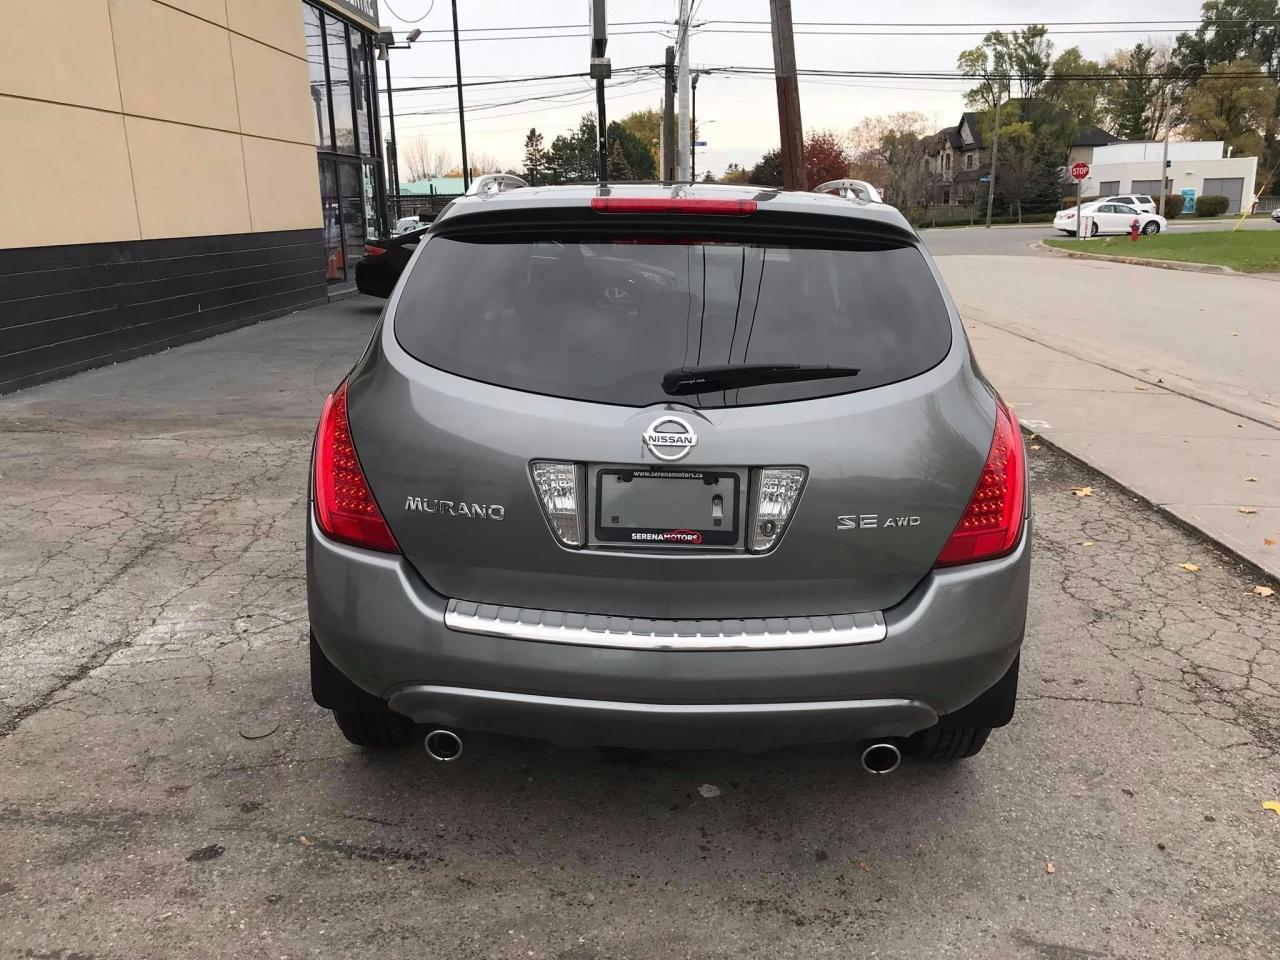 Used 2007 Nissan Murano Se Awd One Owner No Accidents Low Km Fuel Filter 905 273 9739